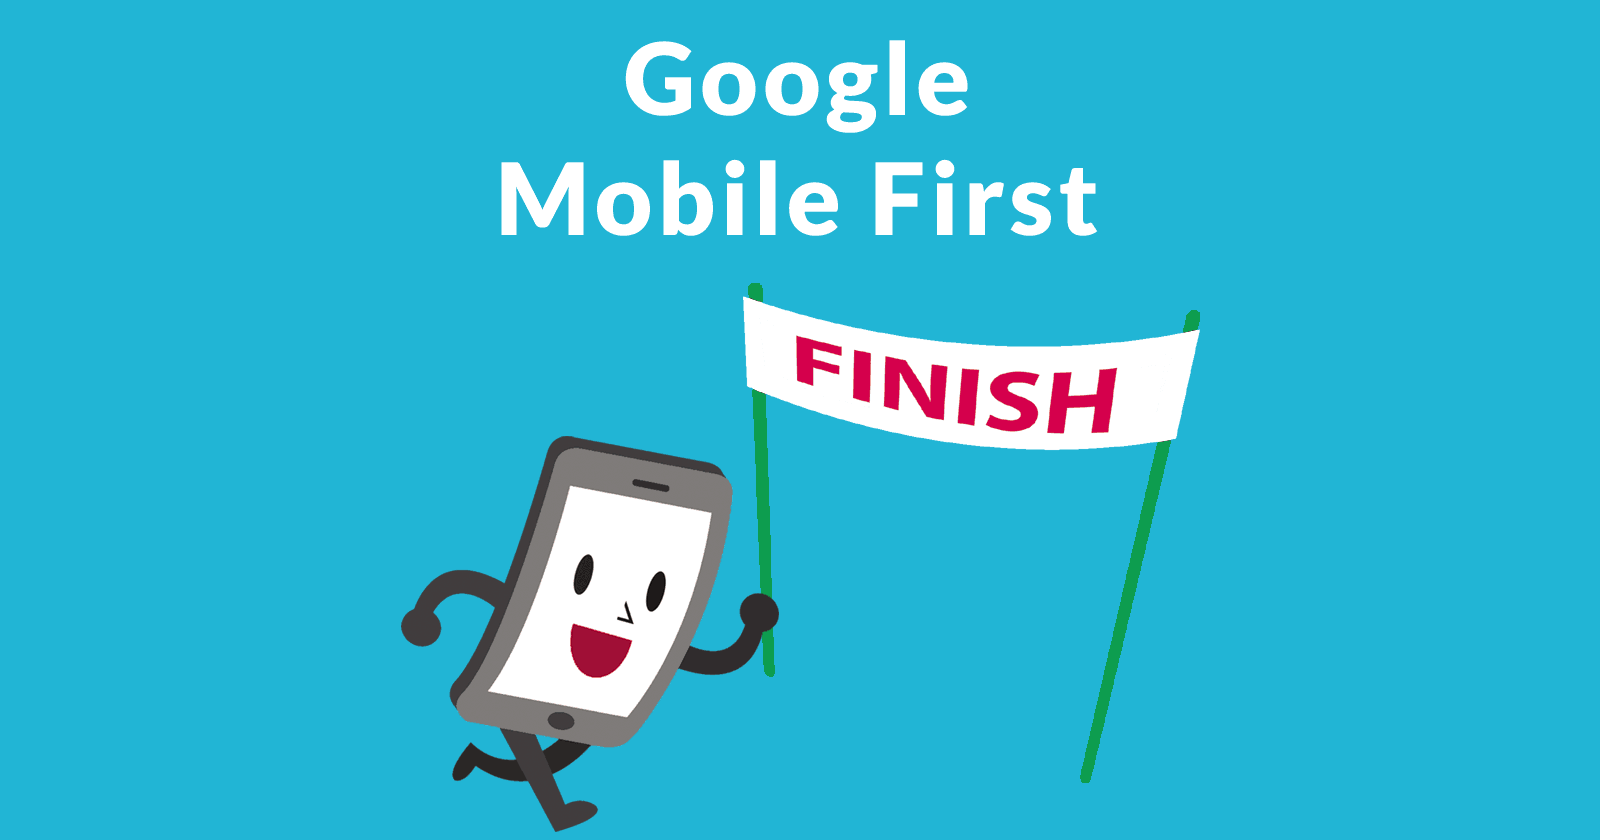 searchenginejournal.com - Roger Montti - Google Updating Mobile First Index?